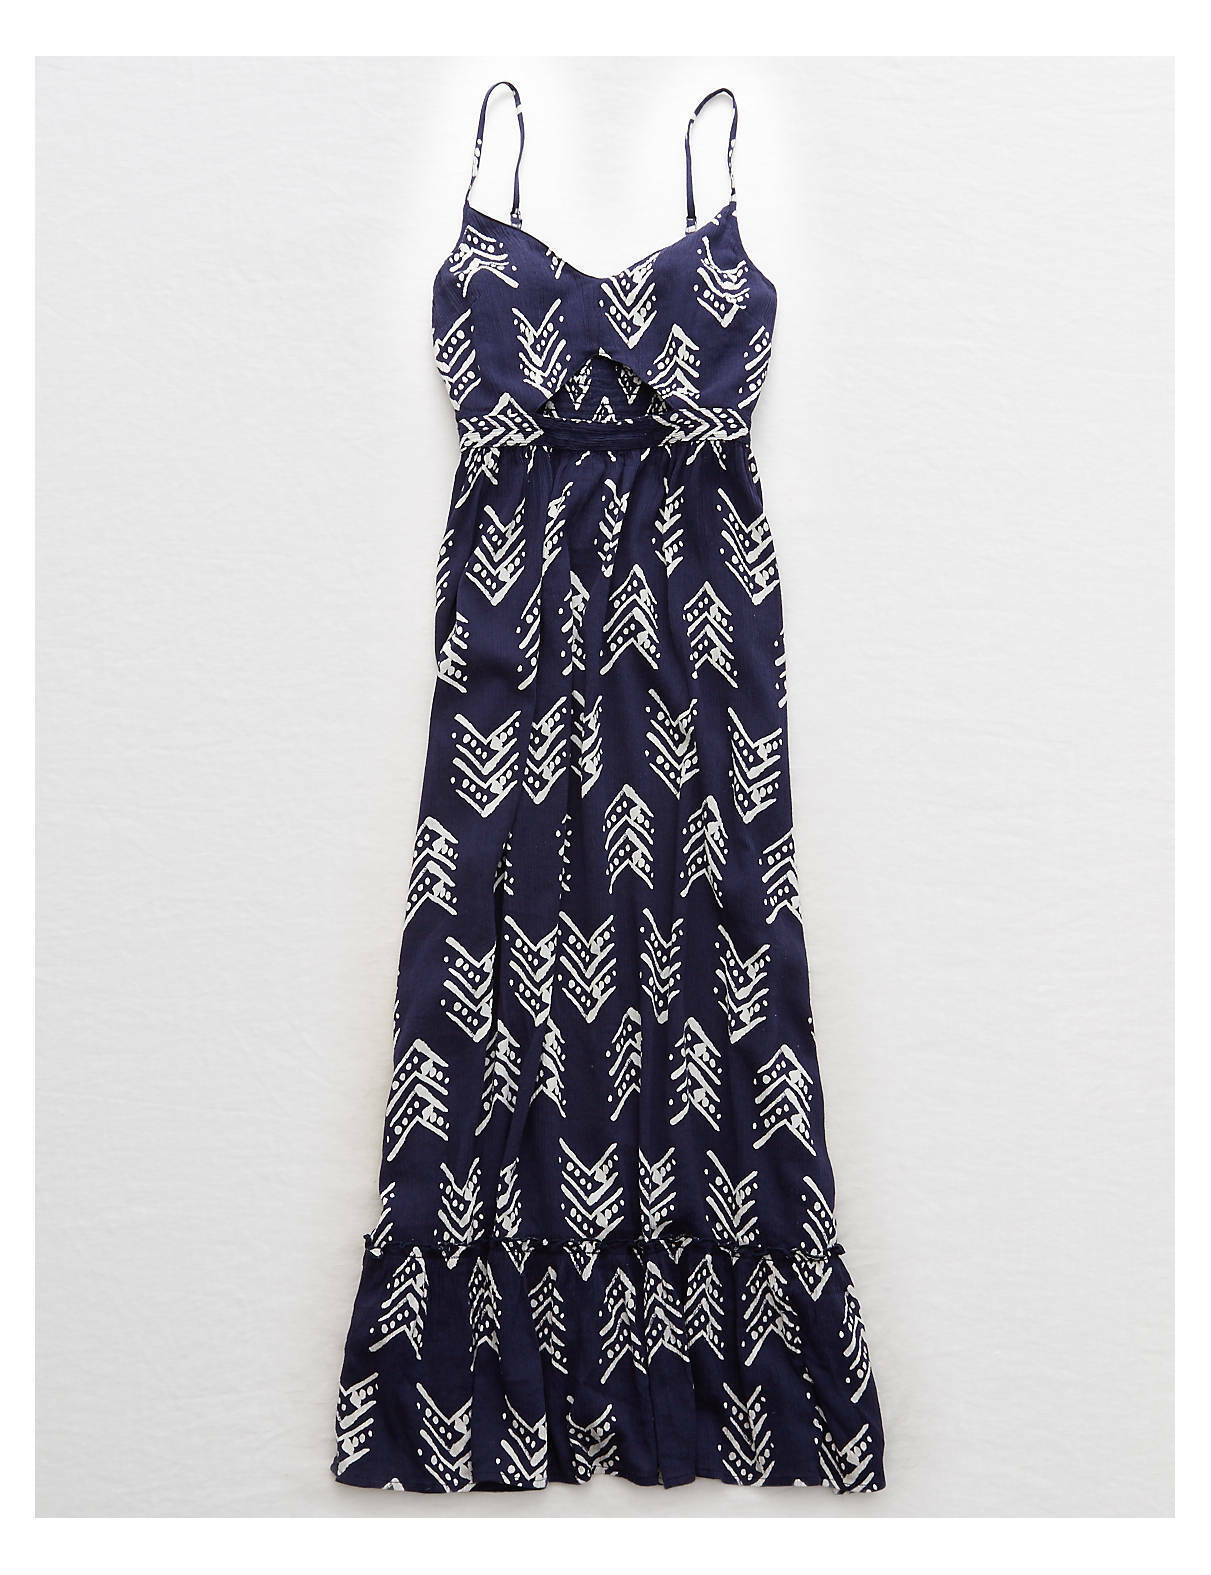 AERIE CUTOUT MAXI DRESS - Small